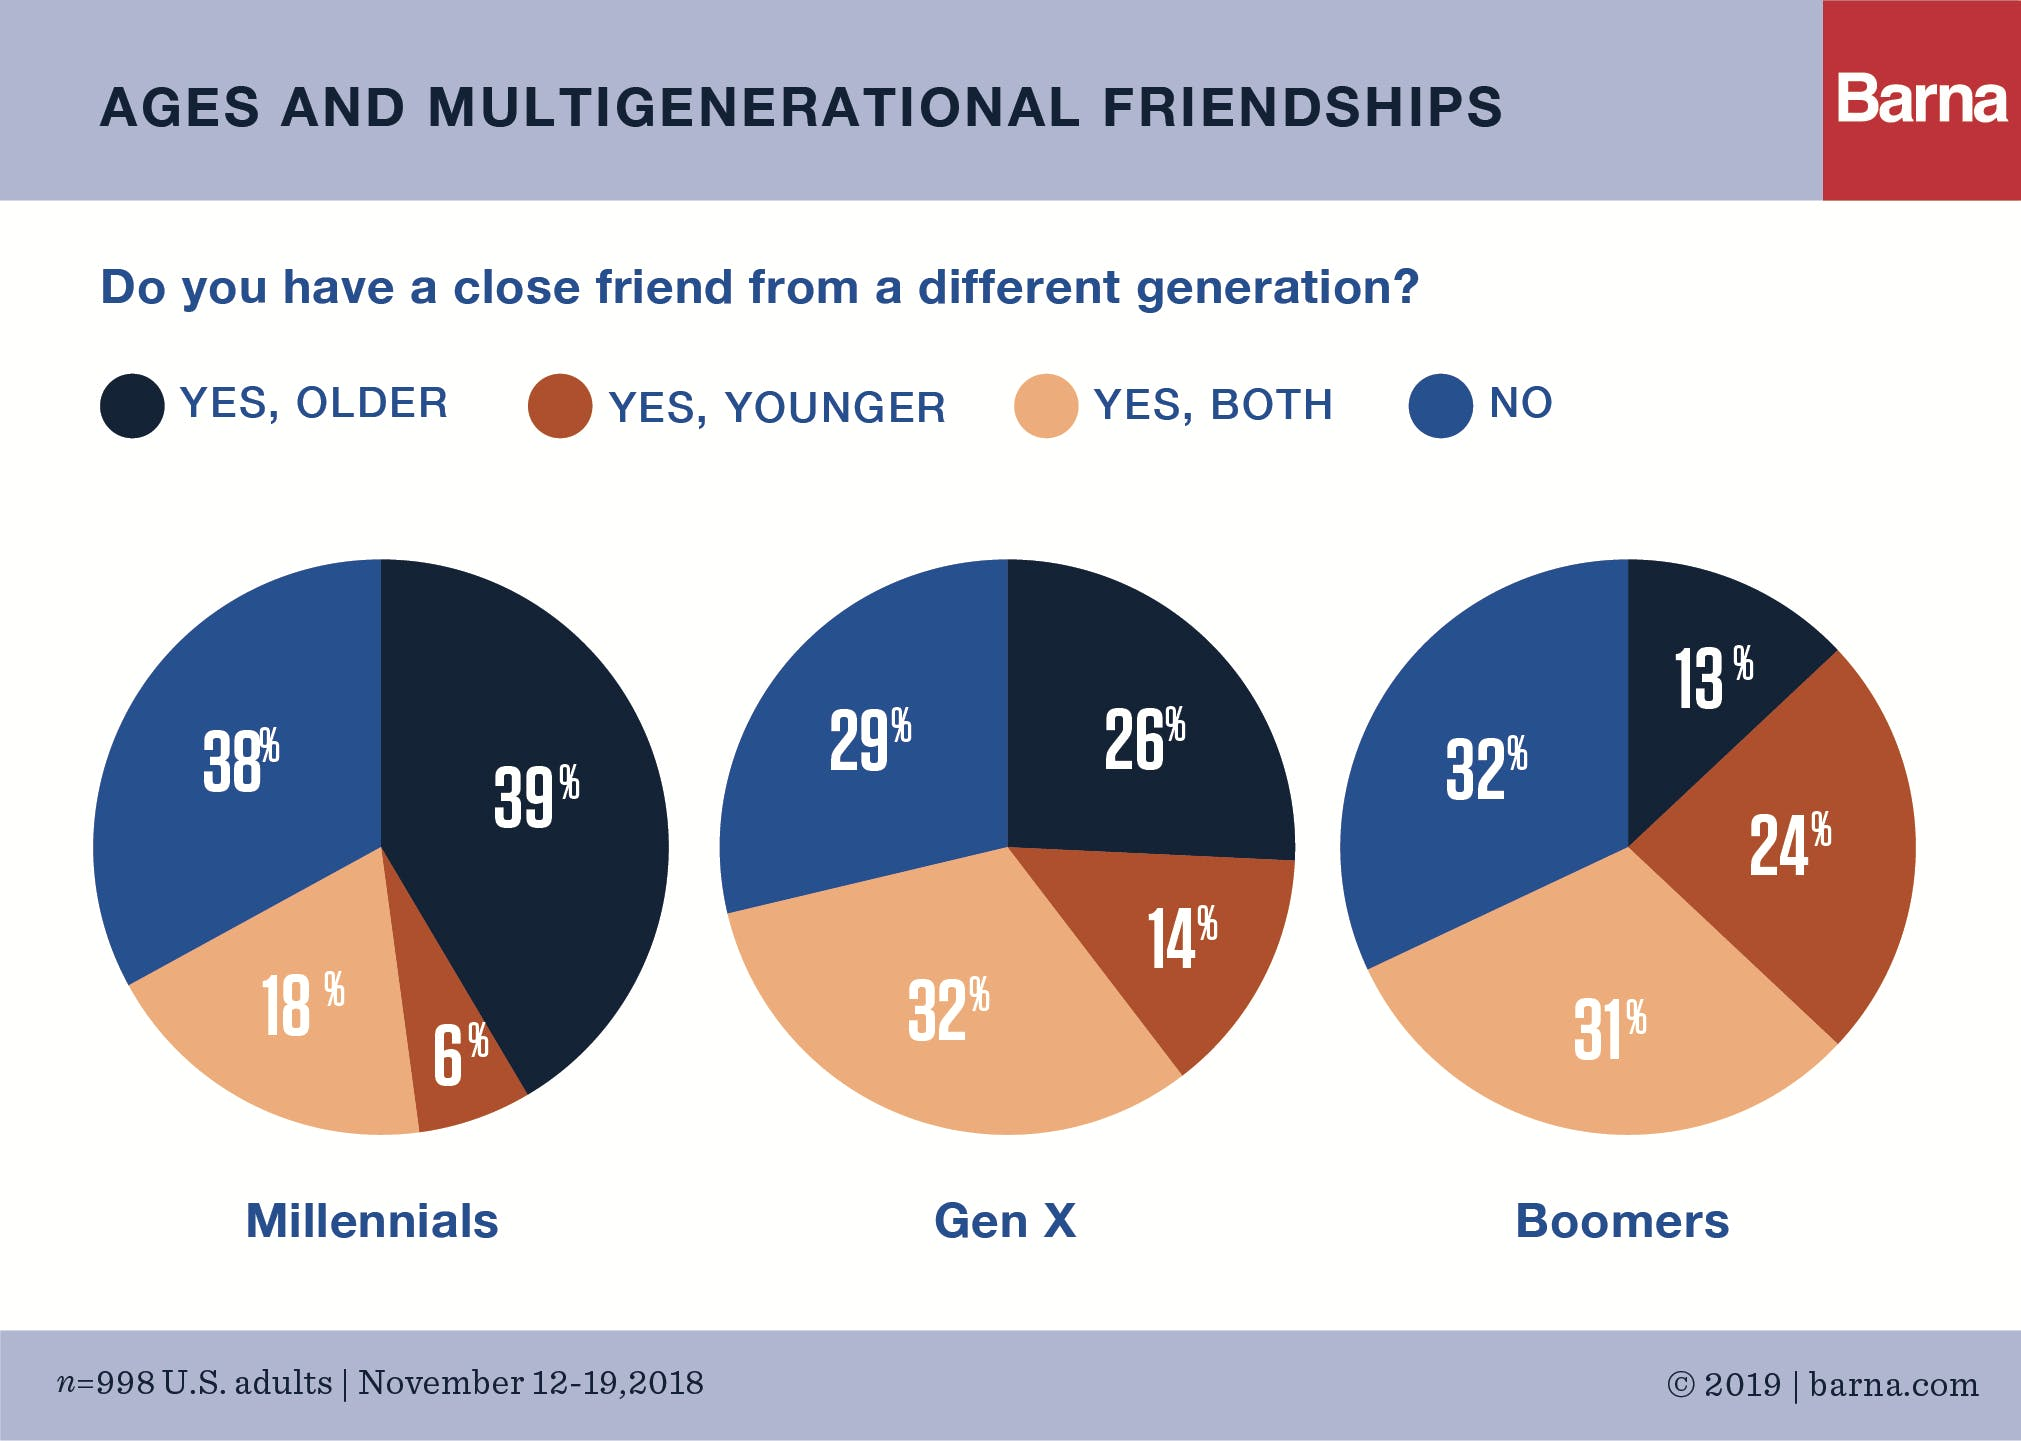 Two-Thirds of Americans Have Multigenerational Friendships